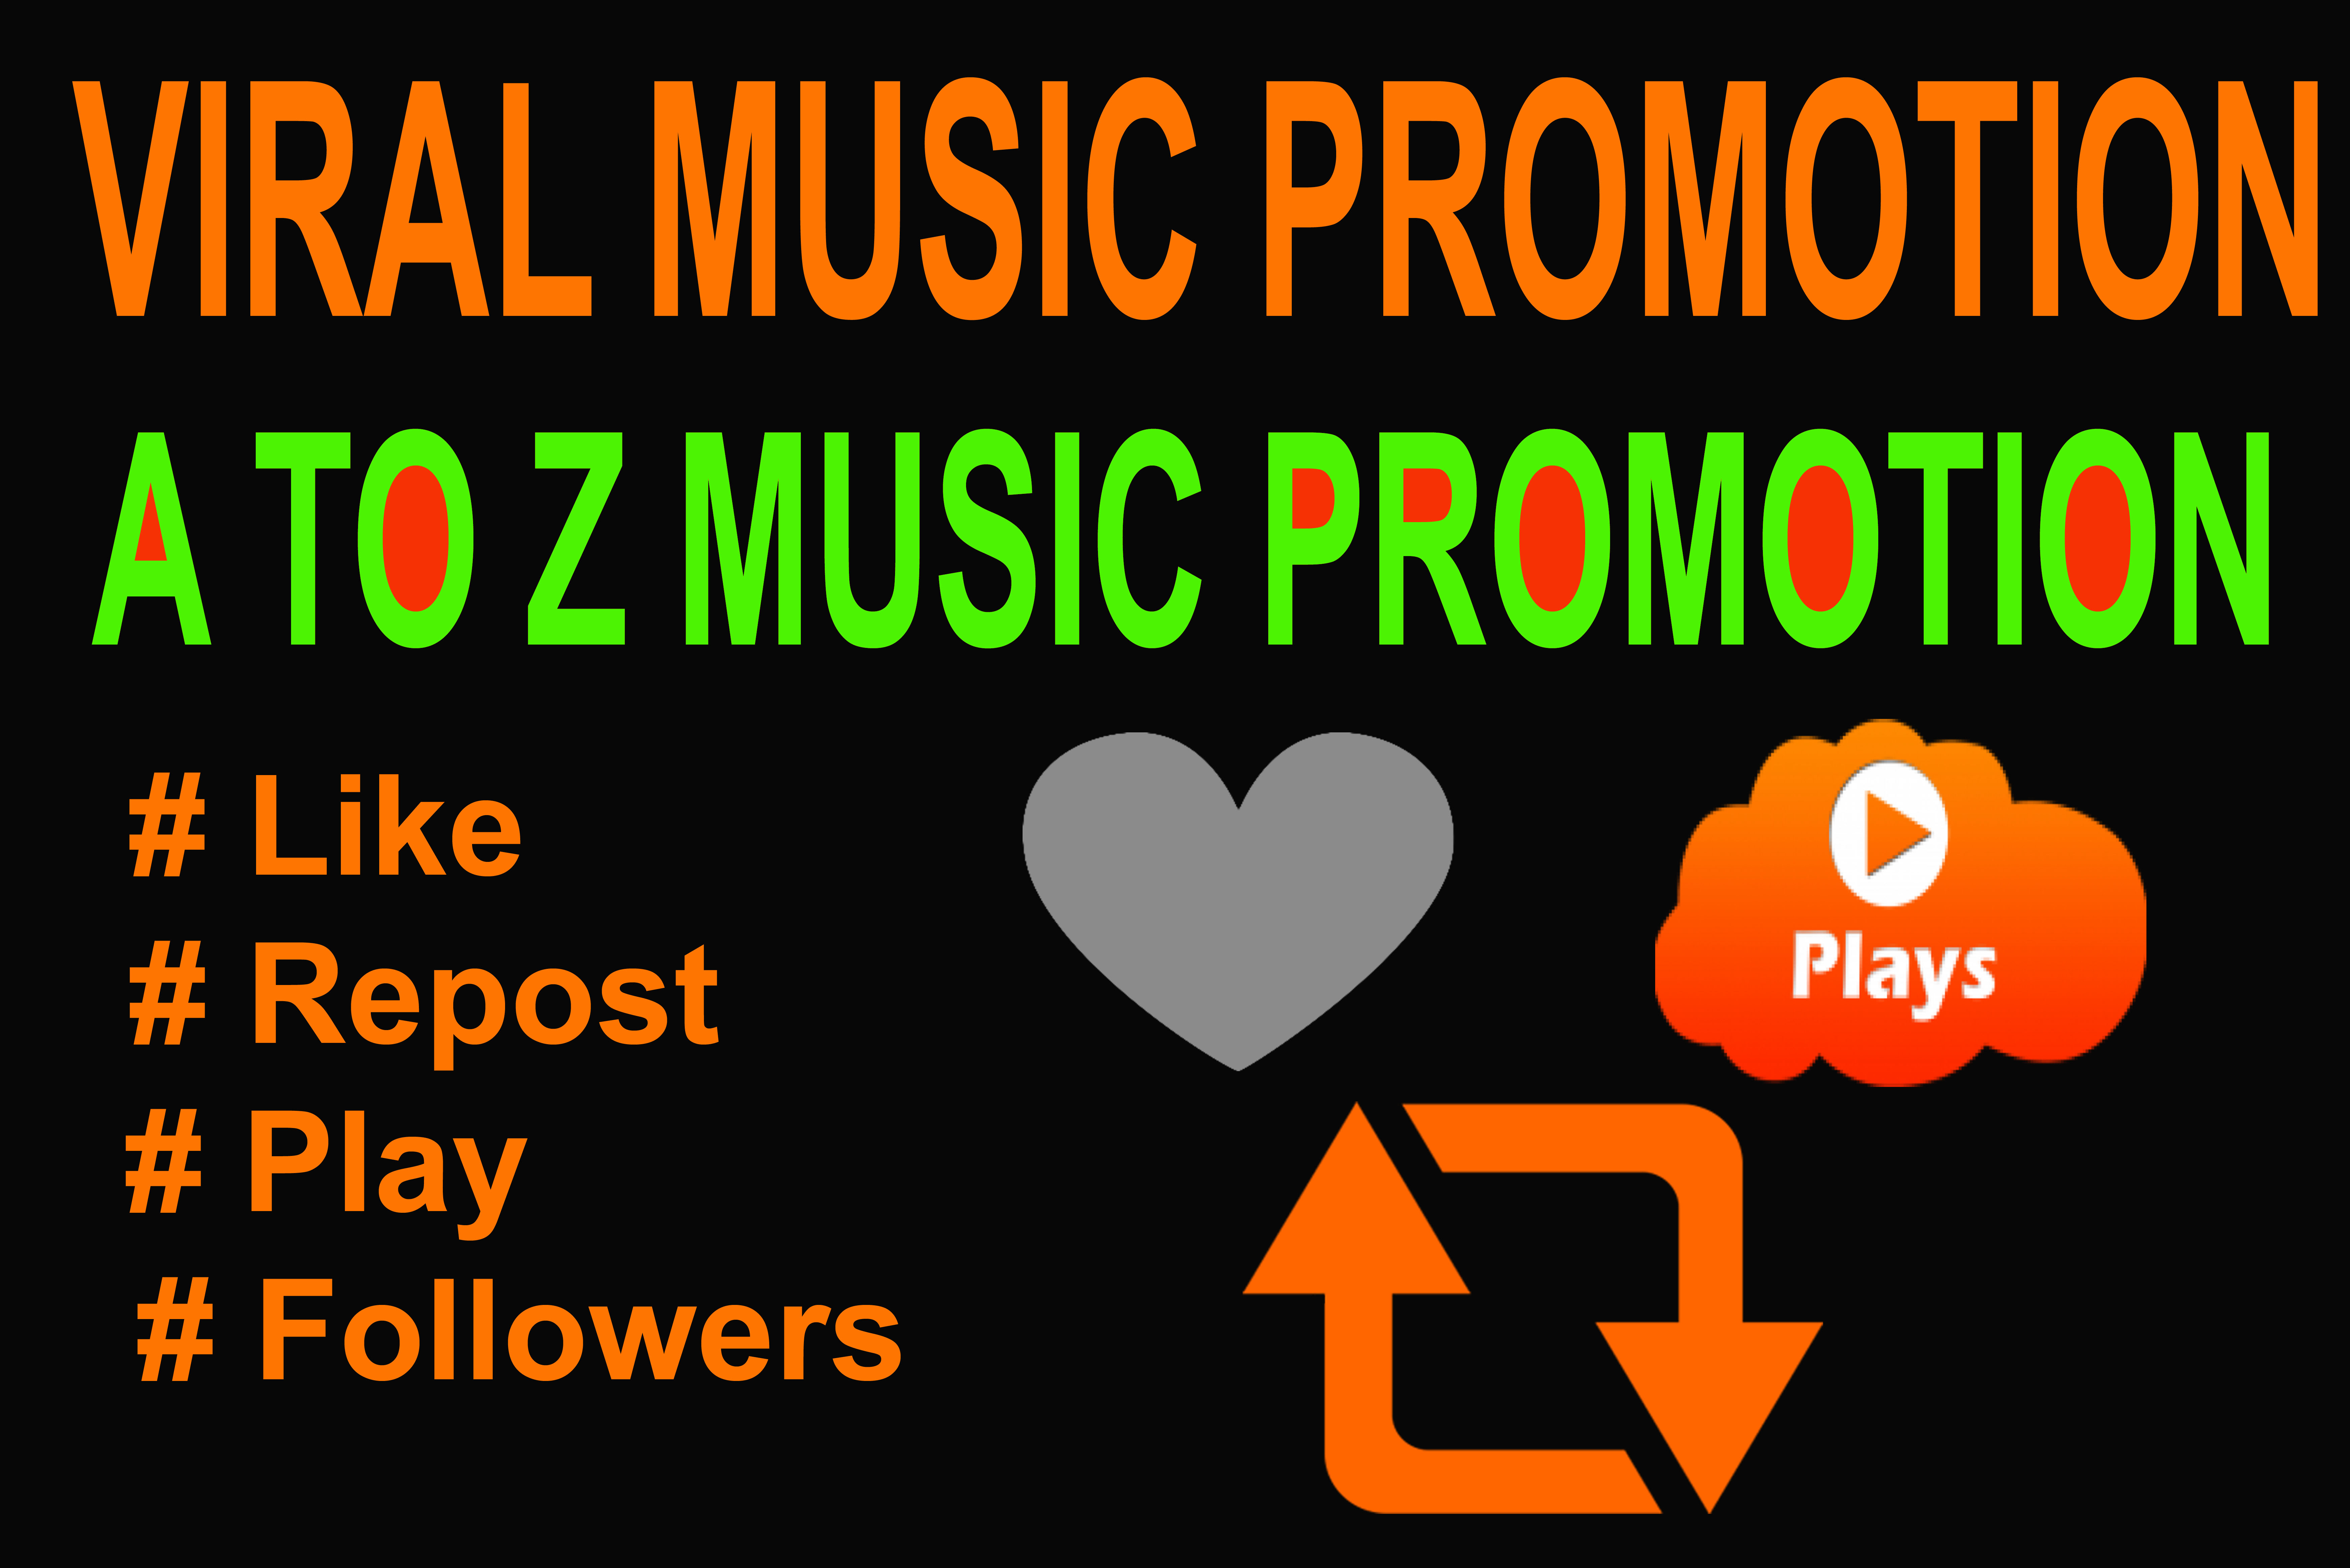 Music Promotion 530 Llke Or 530 Re-post Or 530 F0ll0wers Or 220 C0mment Your Music Track